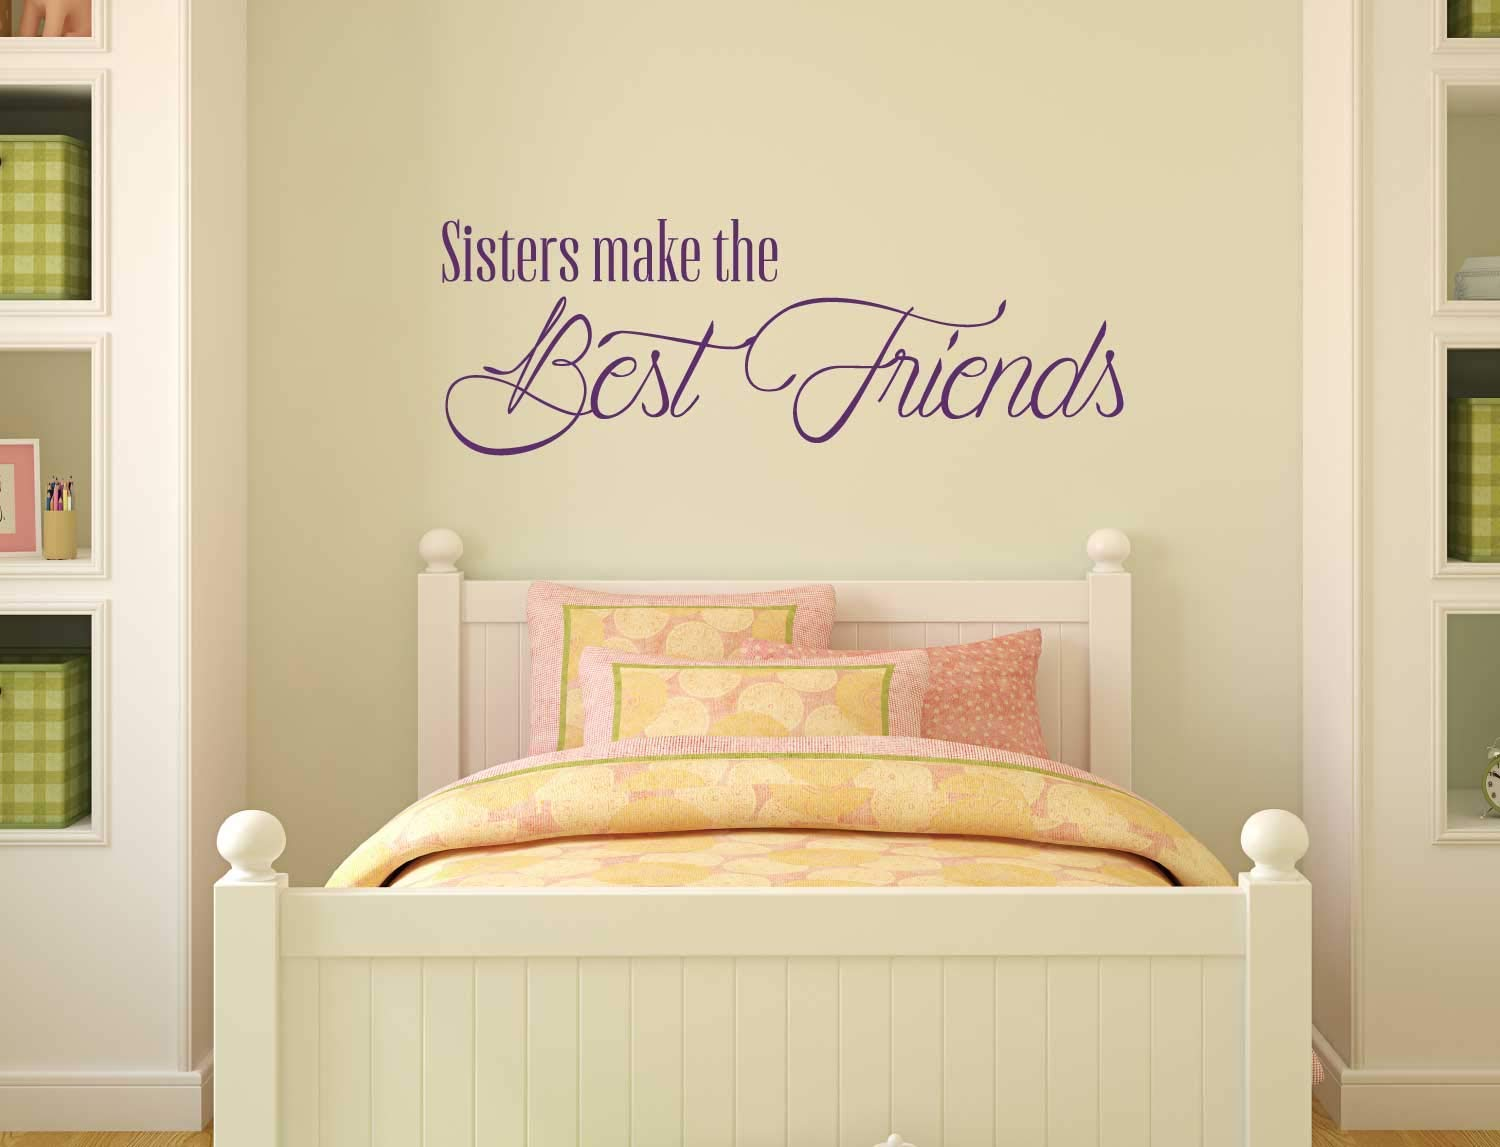 Sister Decal Vinyl Quote Home Decor: 'Sisters Make the Best Friends' | Wall Lettering Design for Girls, Women, Siblings | Black, White, Pink, Purple, Red, Blue, Other Colors | Small, Large Sizes